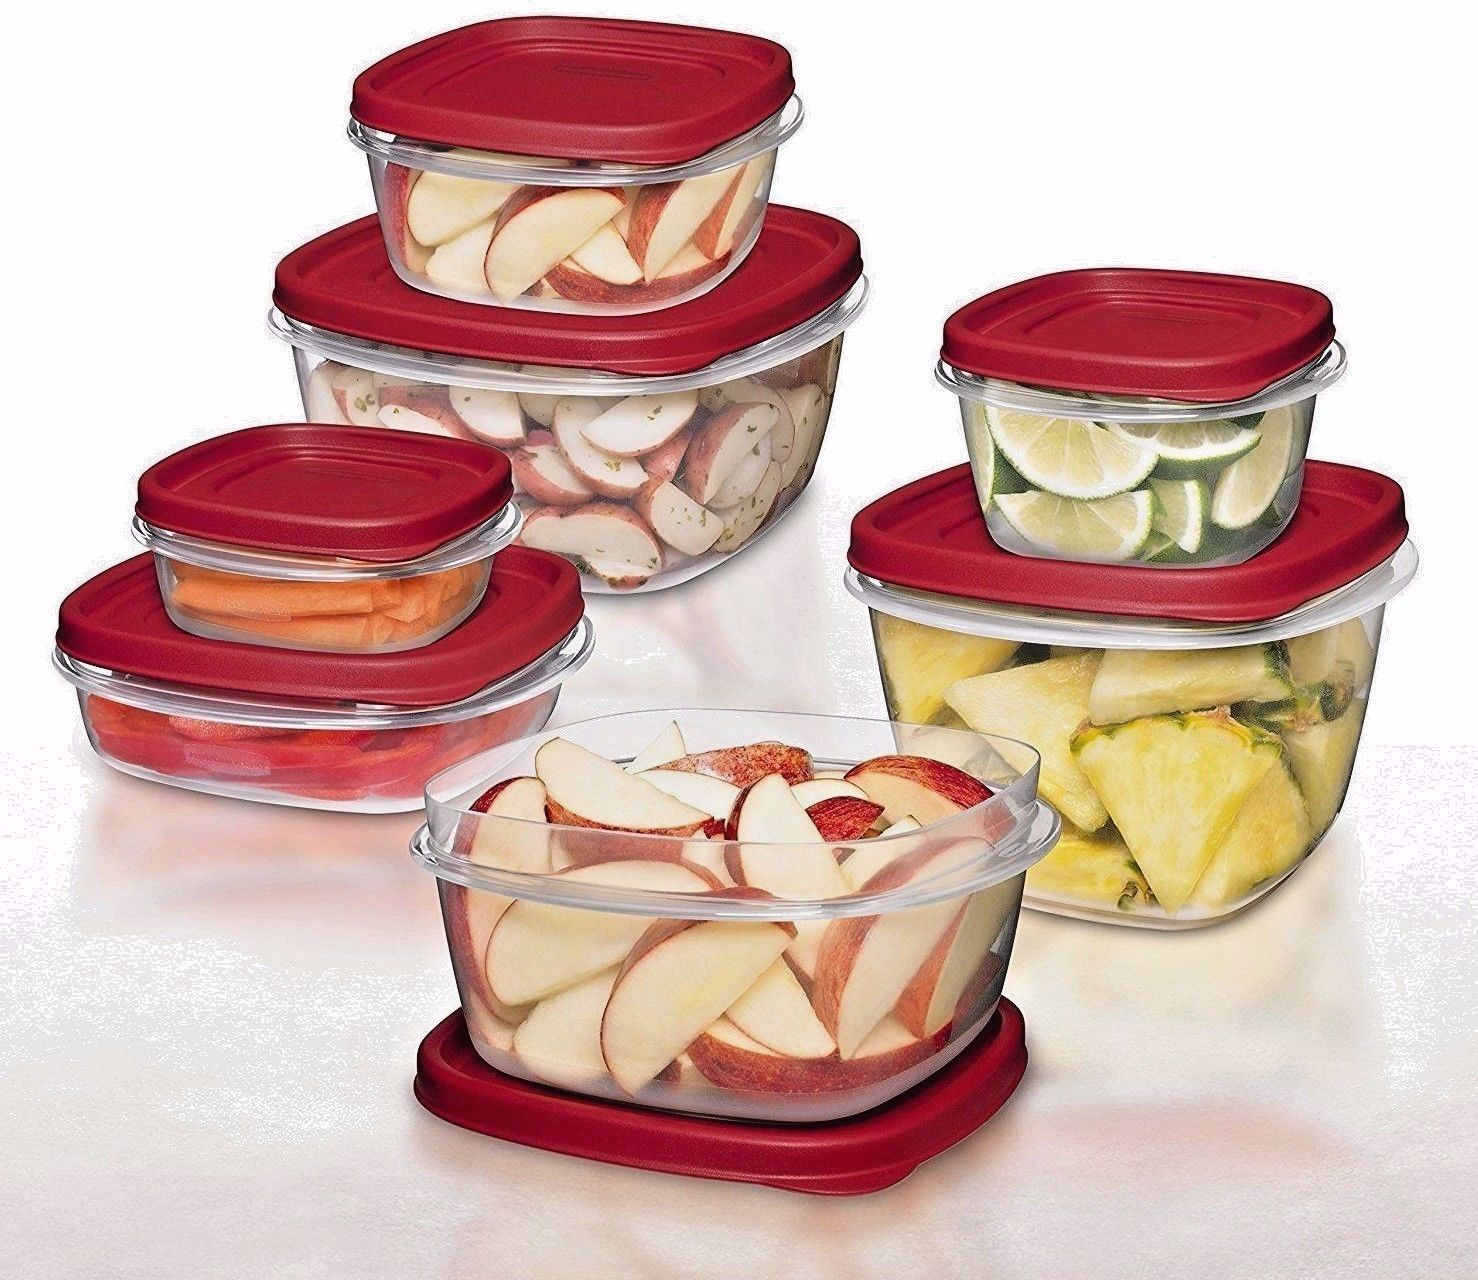 0.5 /1.25 /2 /3/5/7 cups Rubbermaid BPA-FREE Plastic Food Storage Containers Set 1